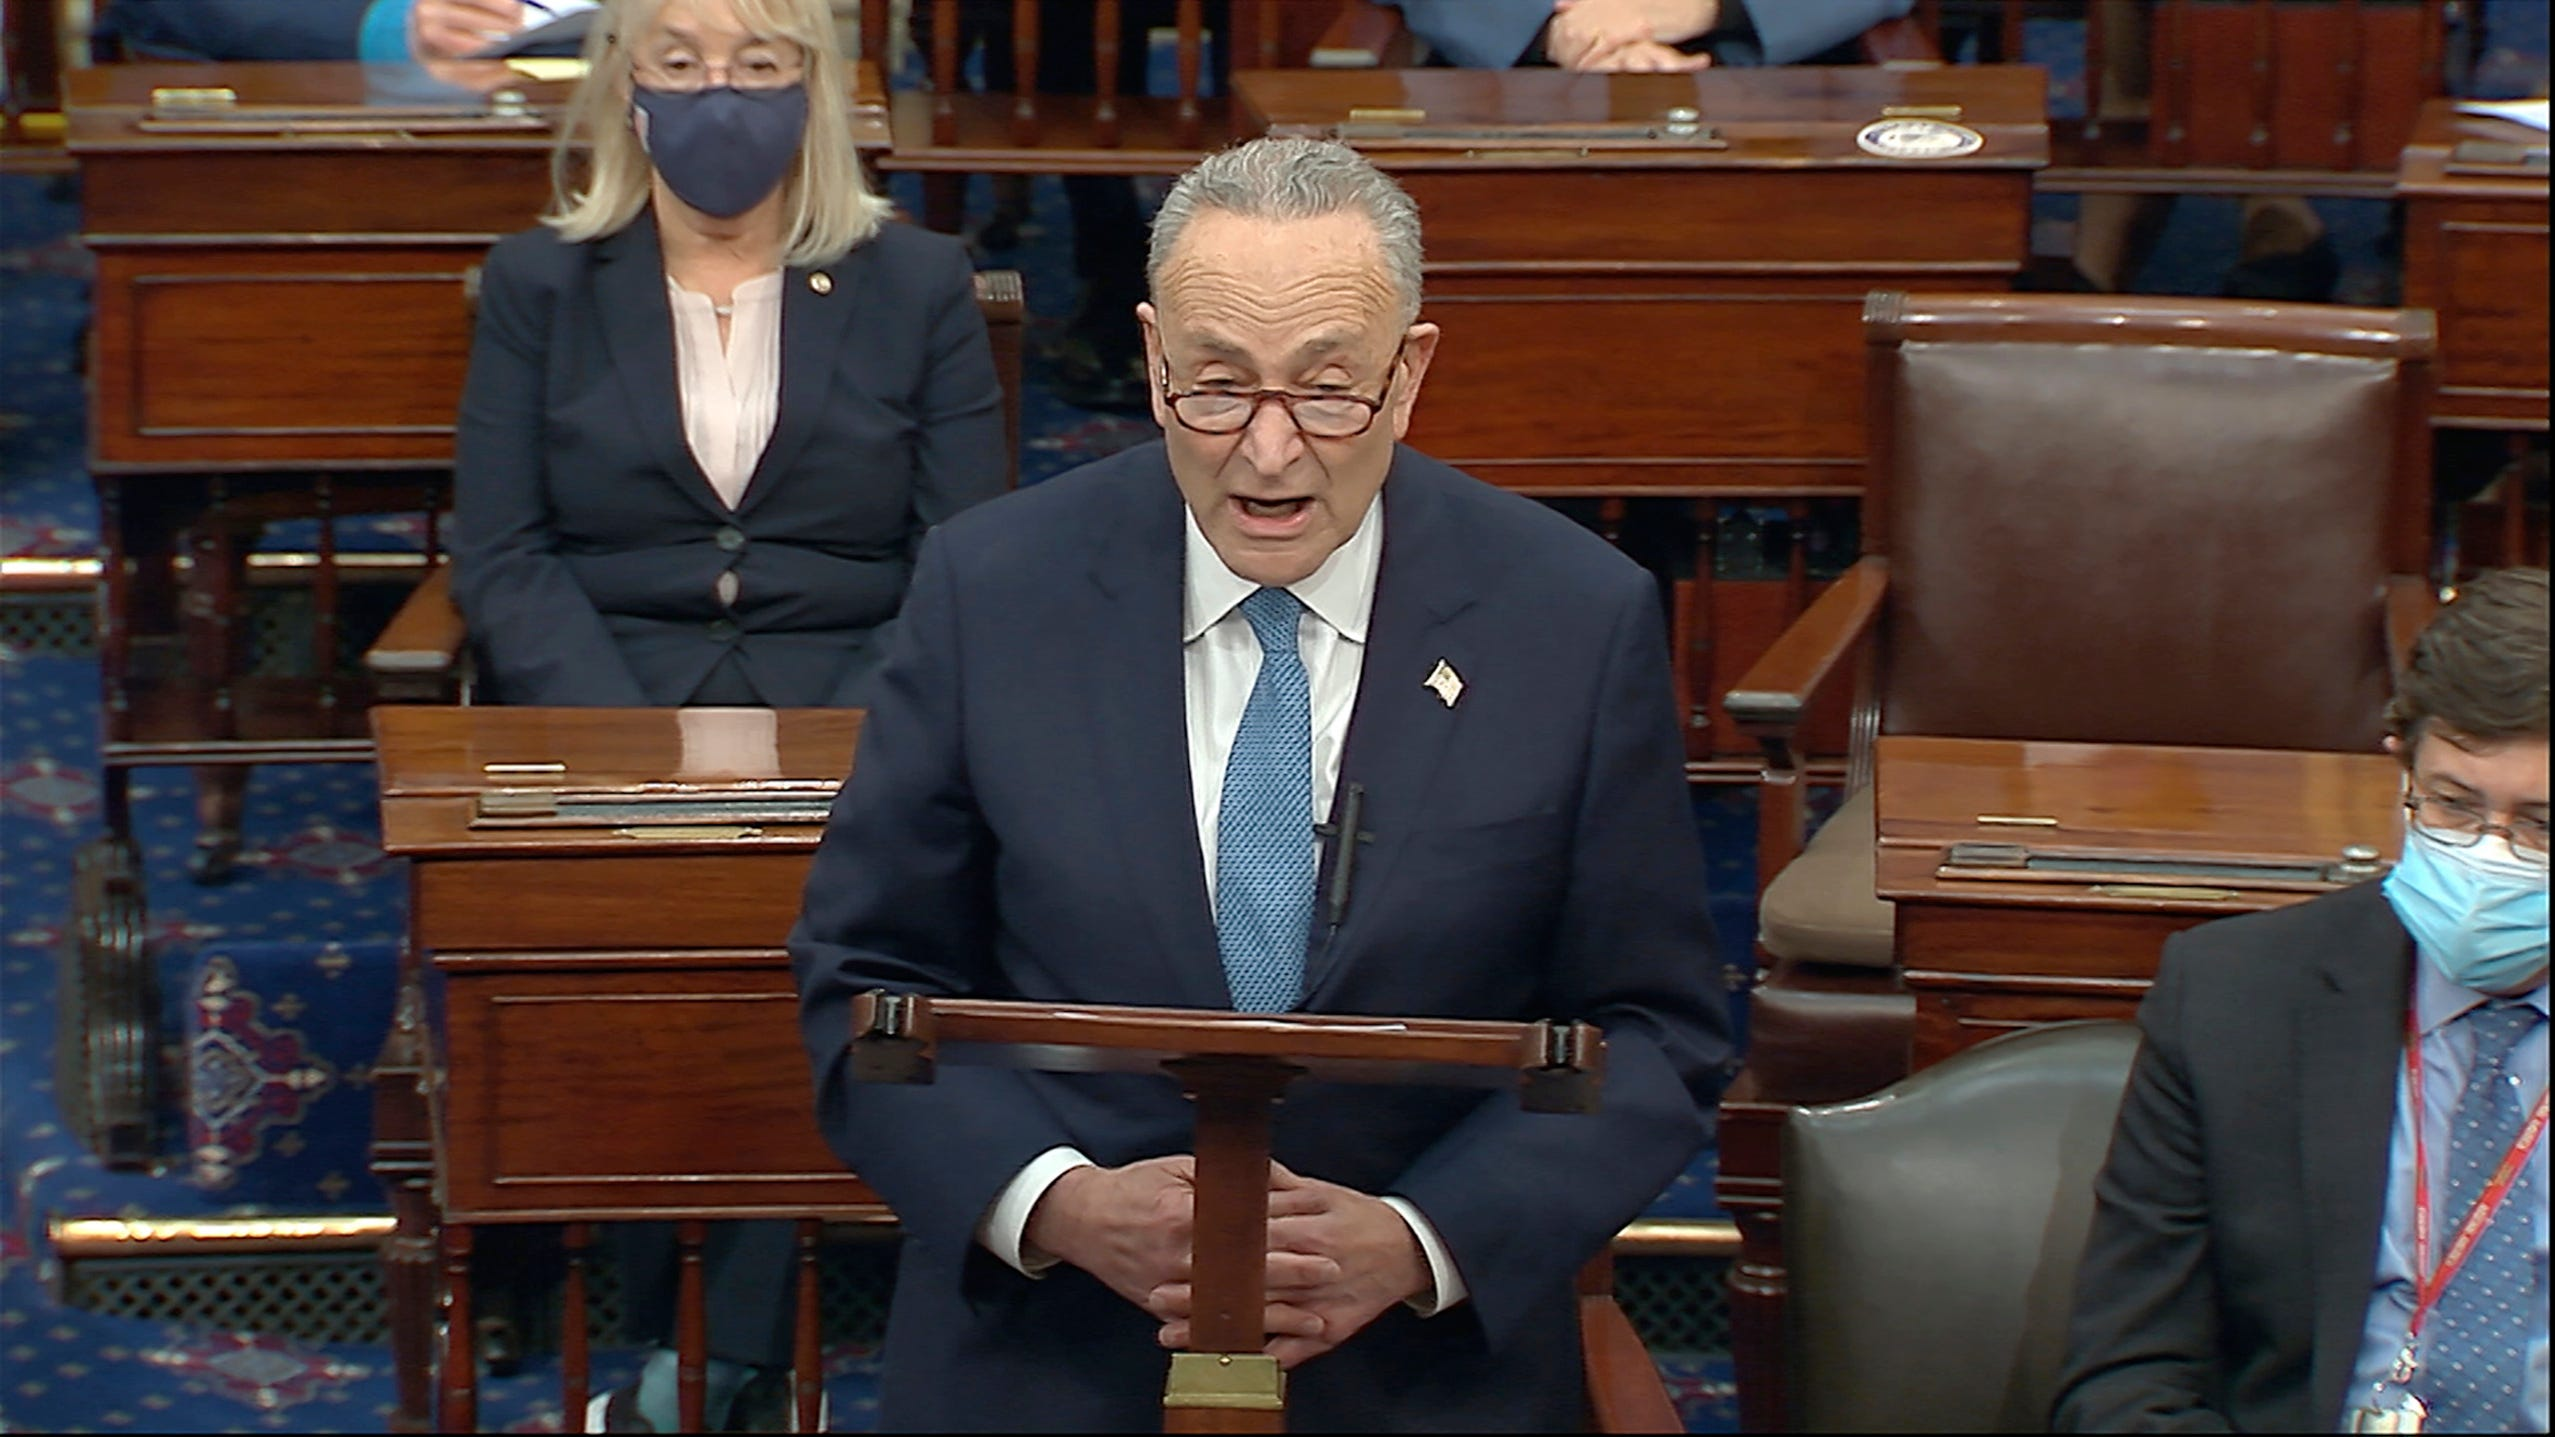 The Latest: Schumer urges Cabinet to oust Trump